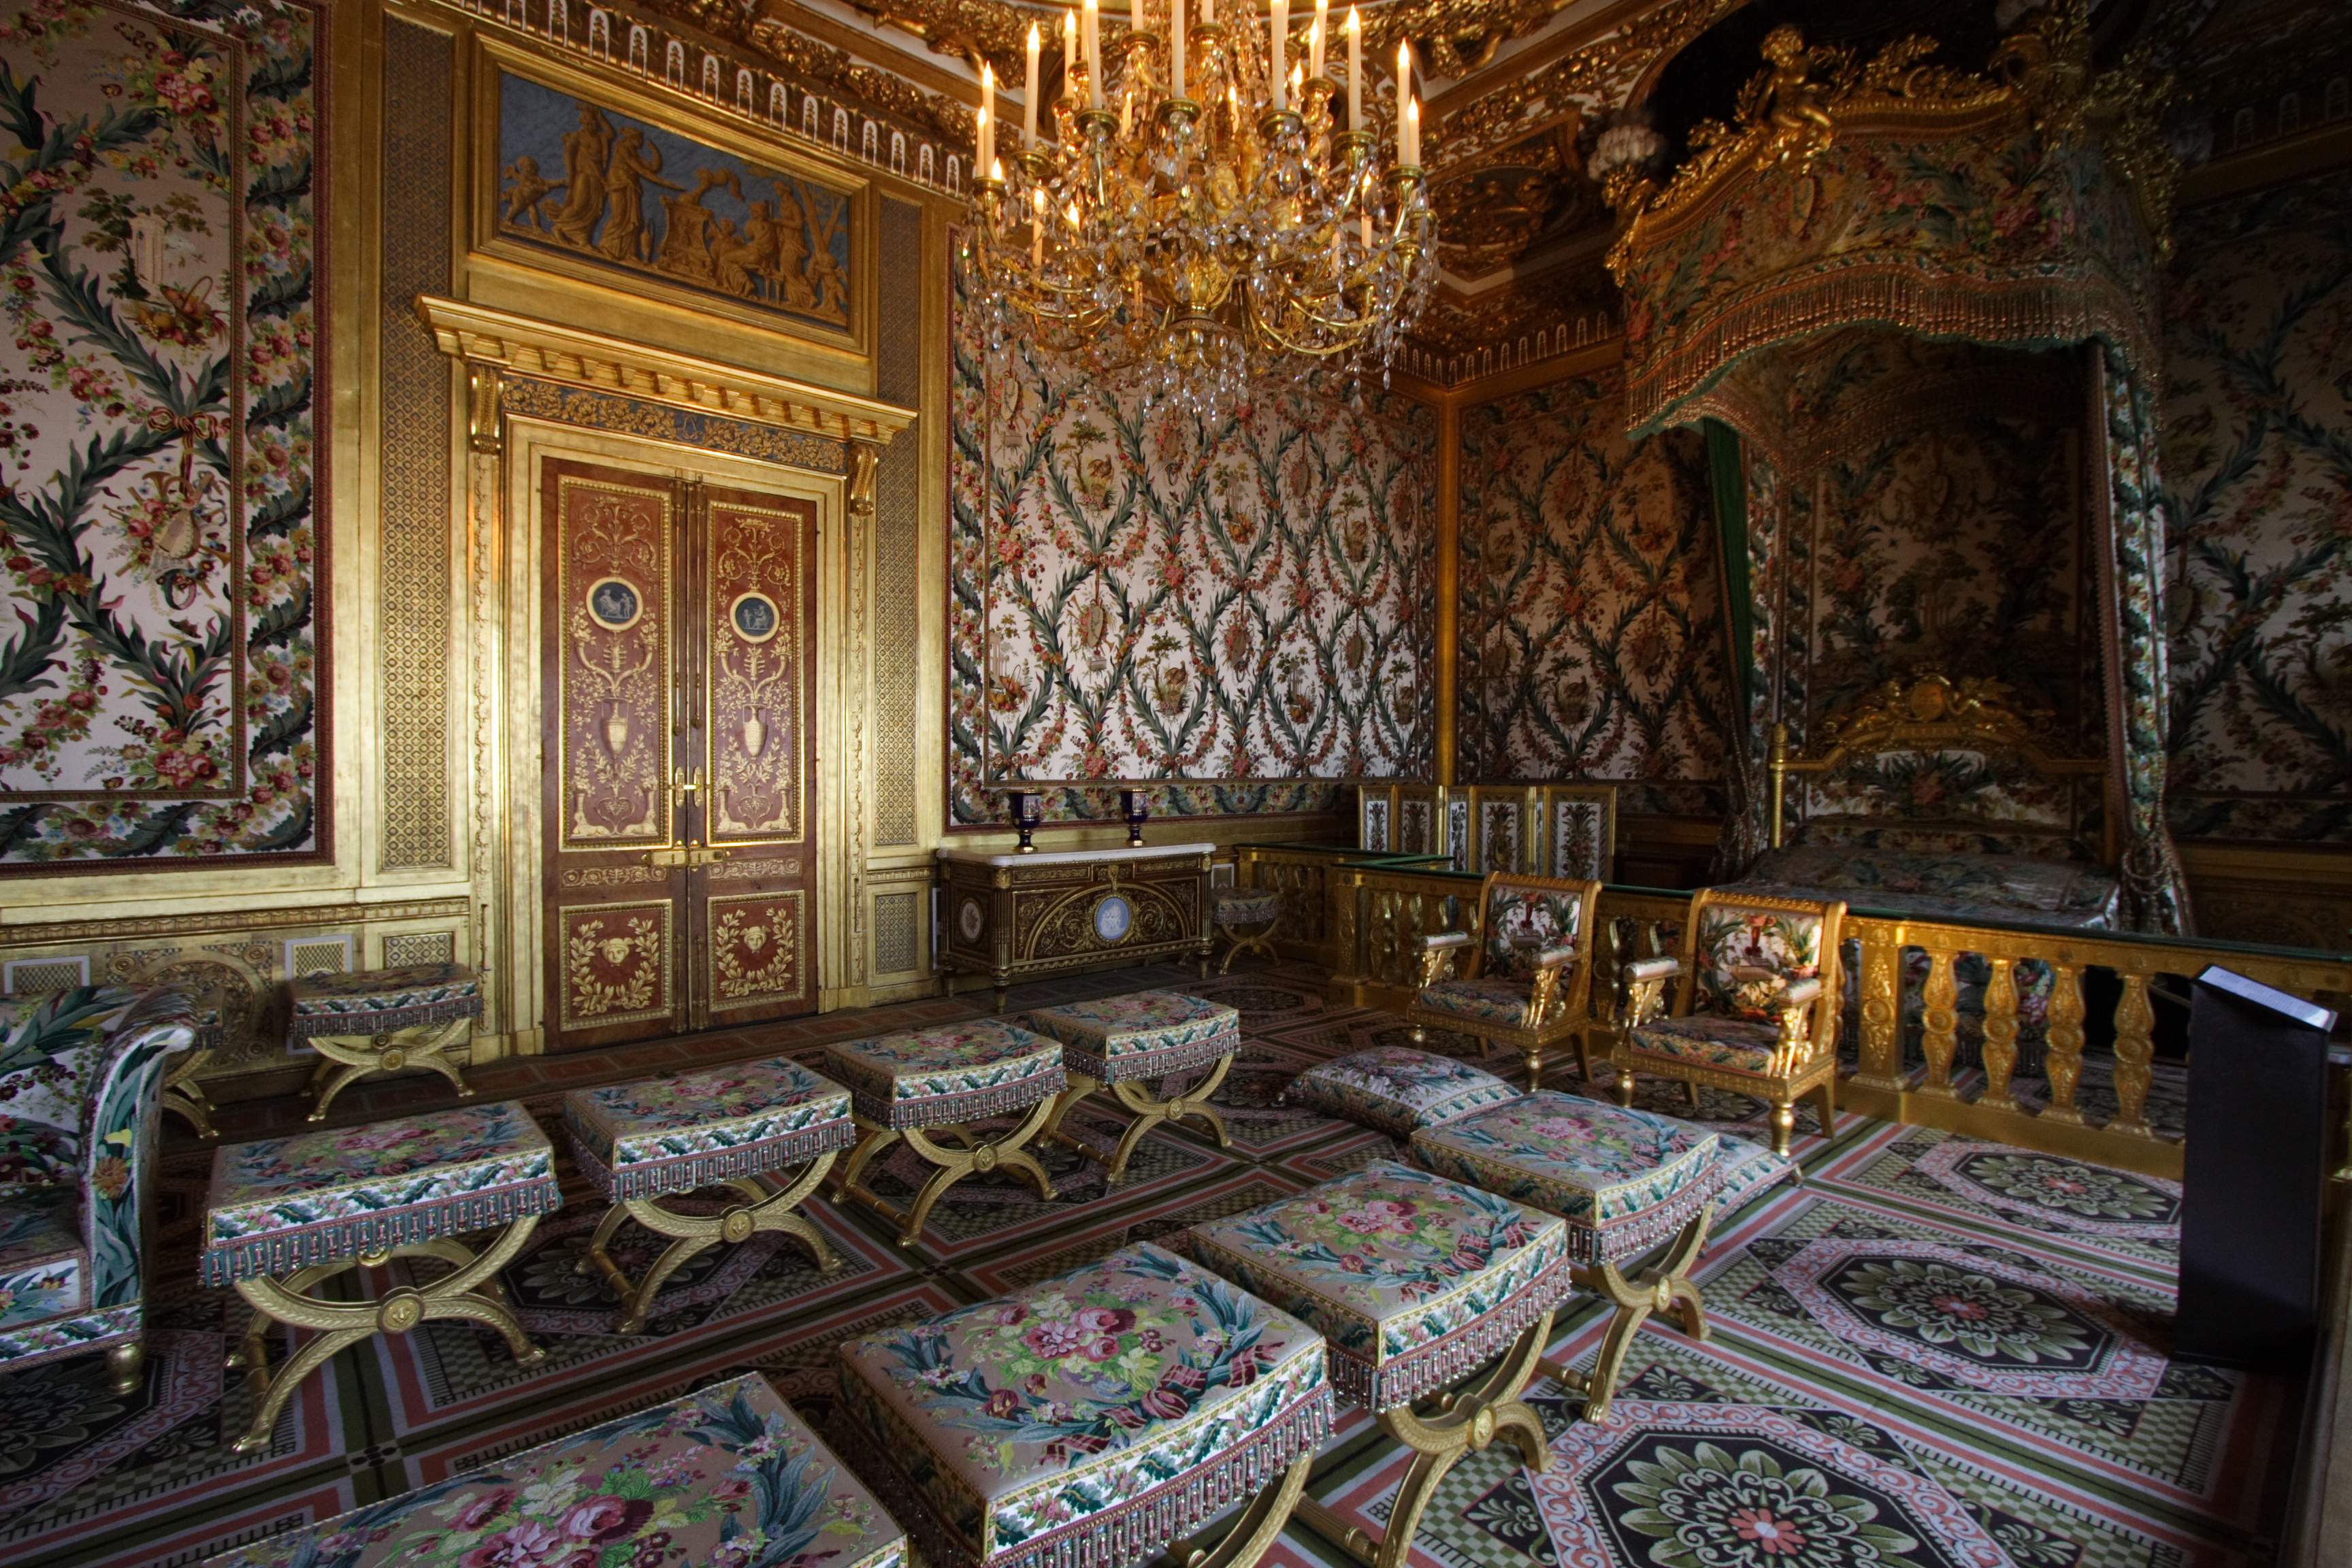 file chateau de fontainebleau fra 028 jpg wikimedia commons. Black Bedroom Furniture Sets. Home Design Ideas